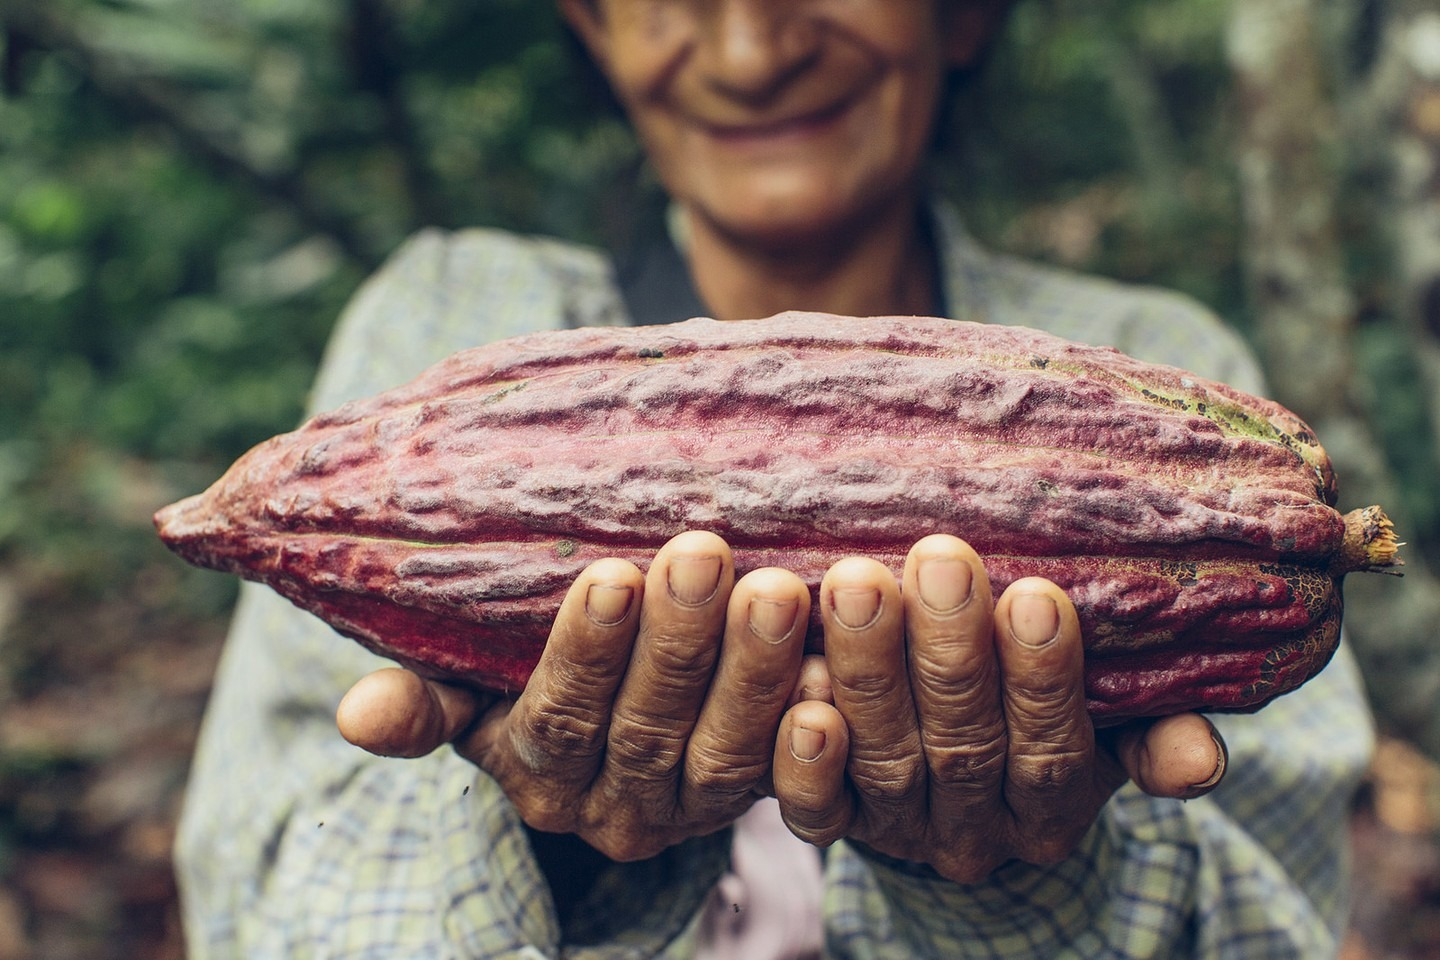 Can Cocoa Fuel Combat Climate Change?